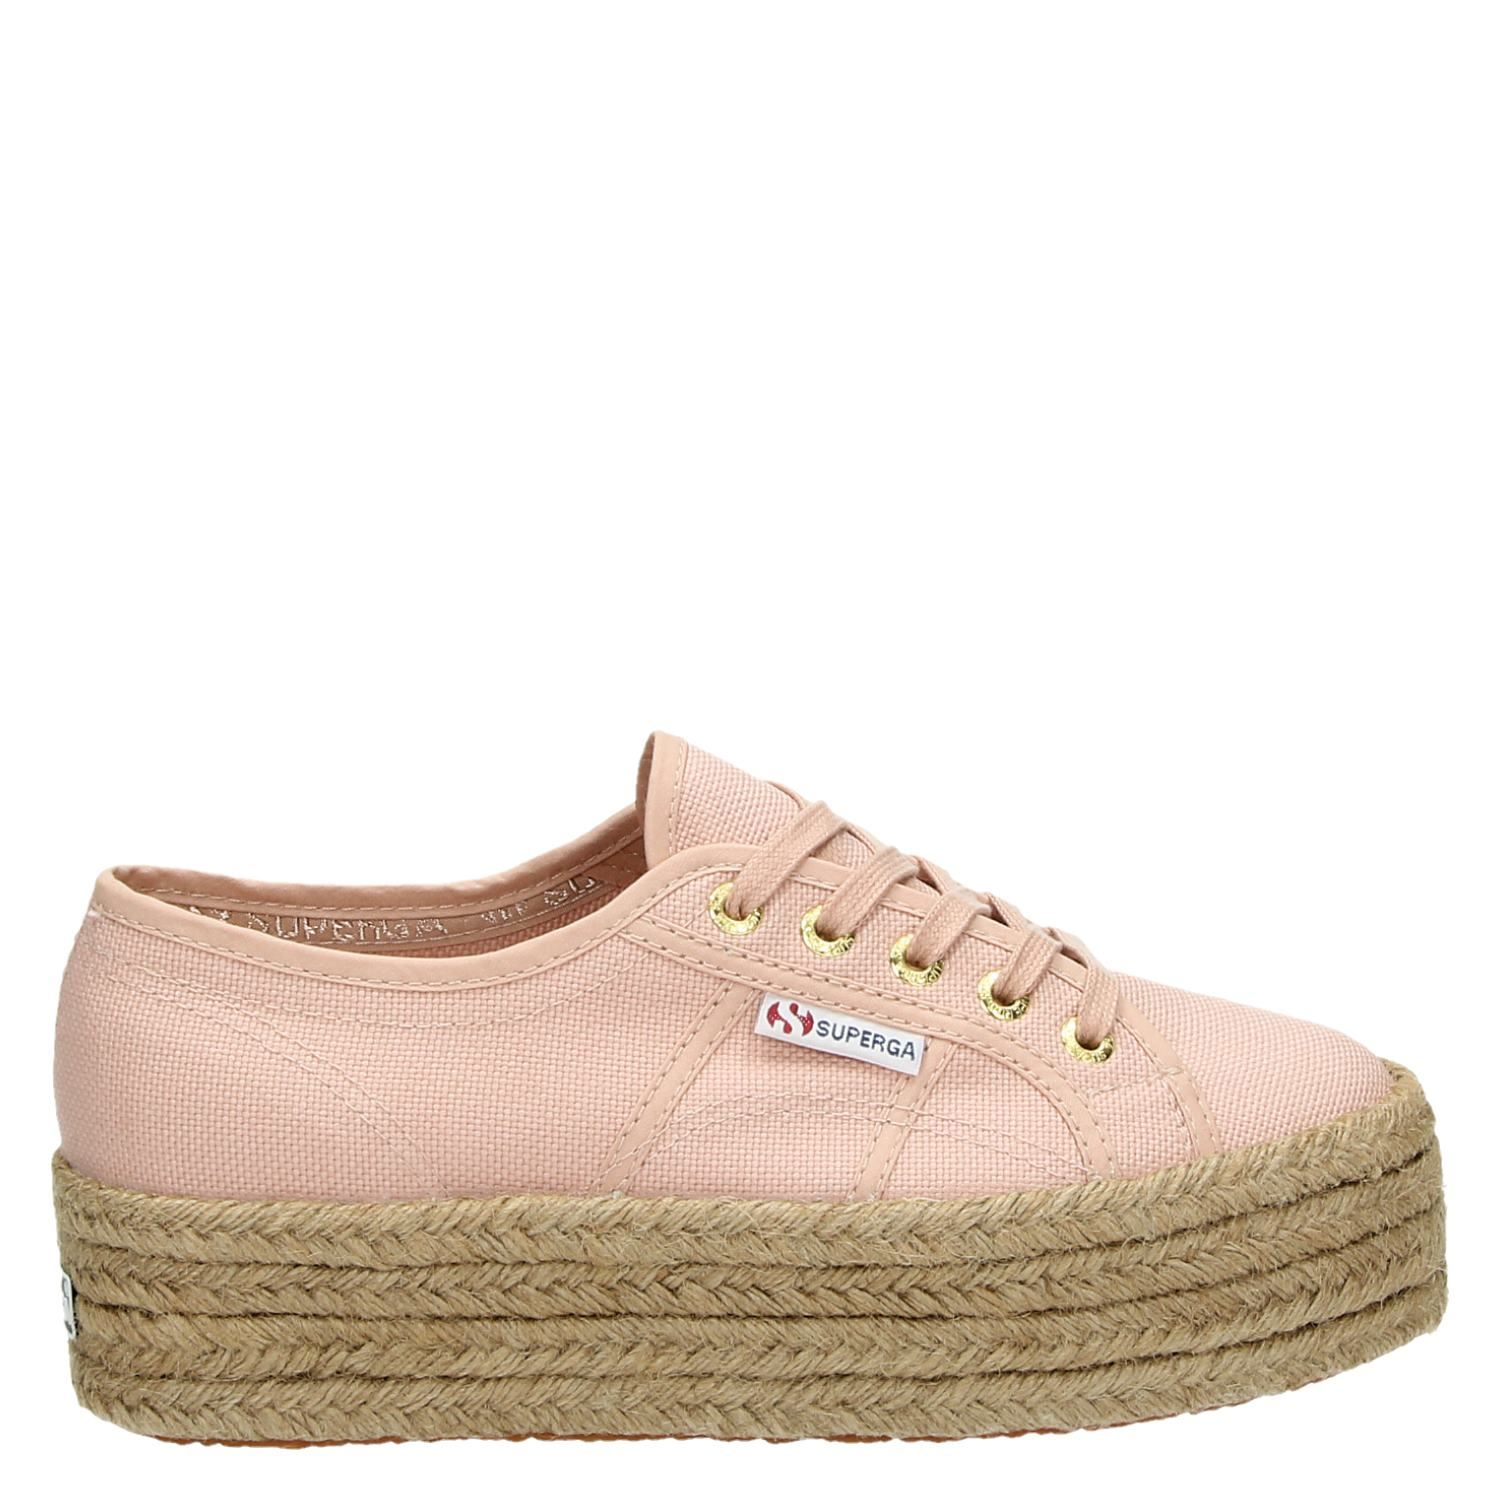 Baskets Superga Plate-forme Rose mnbX9fb